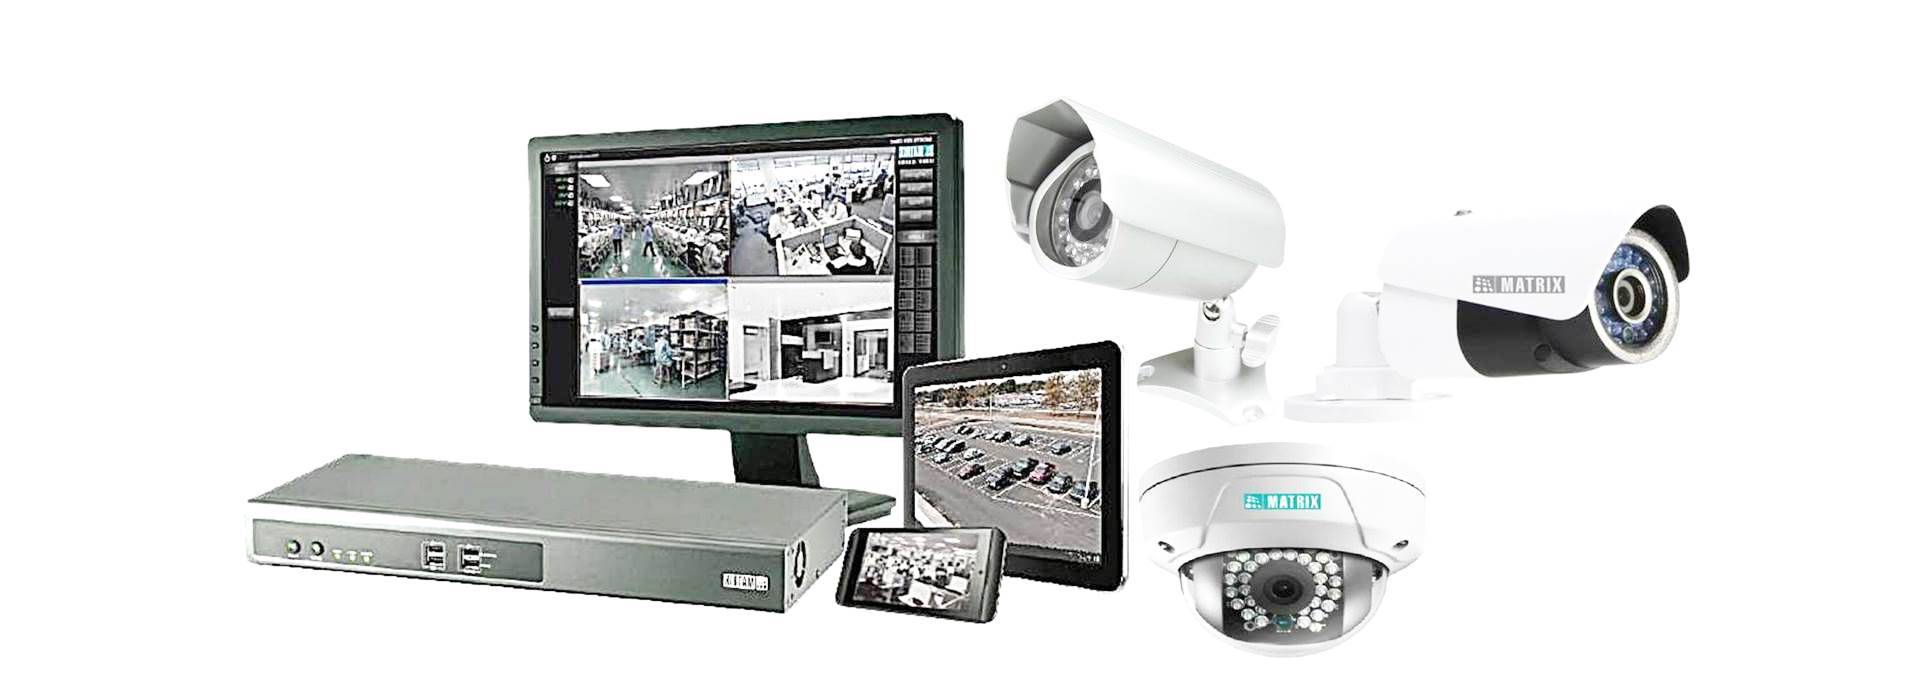 CCTV Surveillance Systems in Kenya